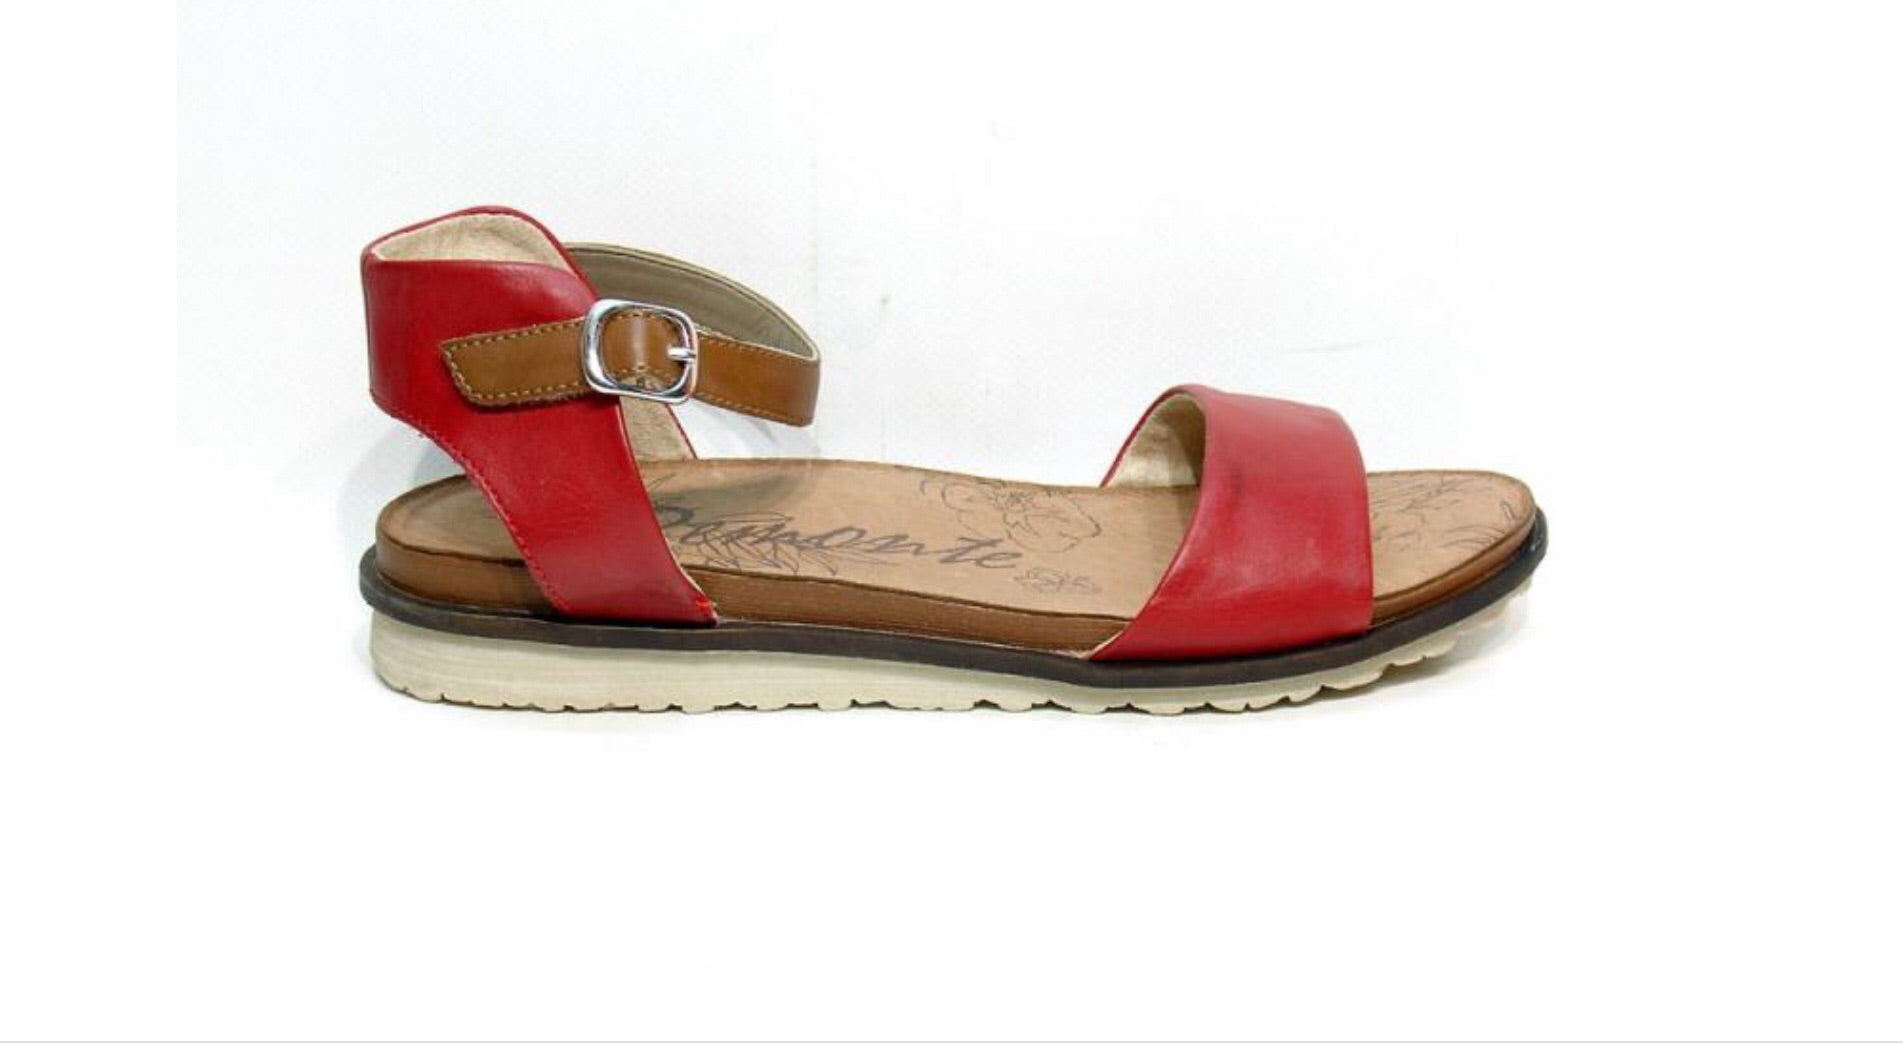 Remonte Gizela Leather Sandal In Red